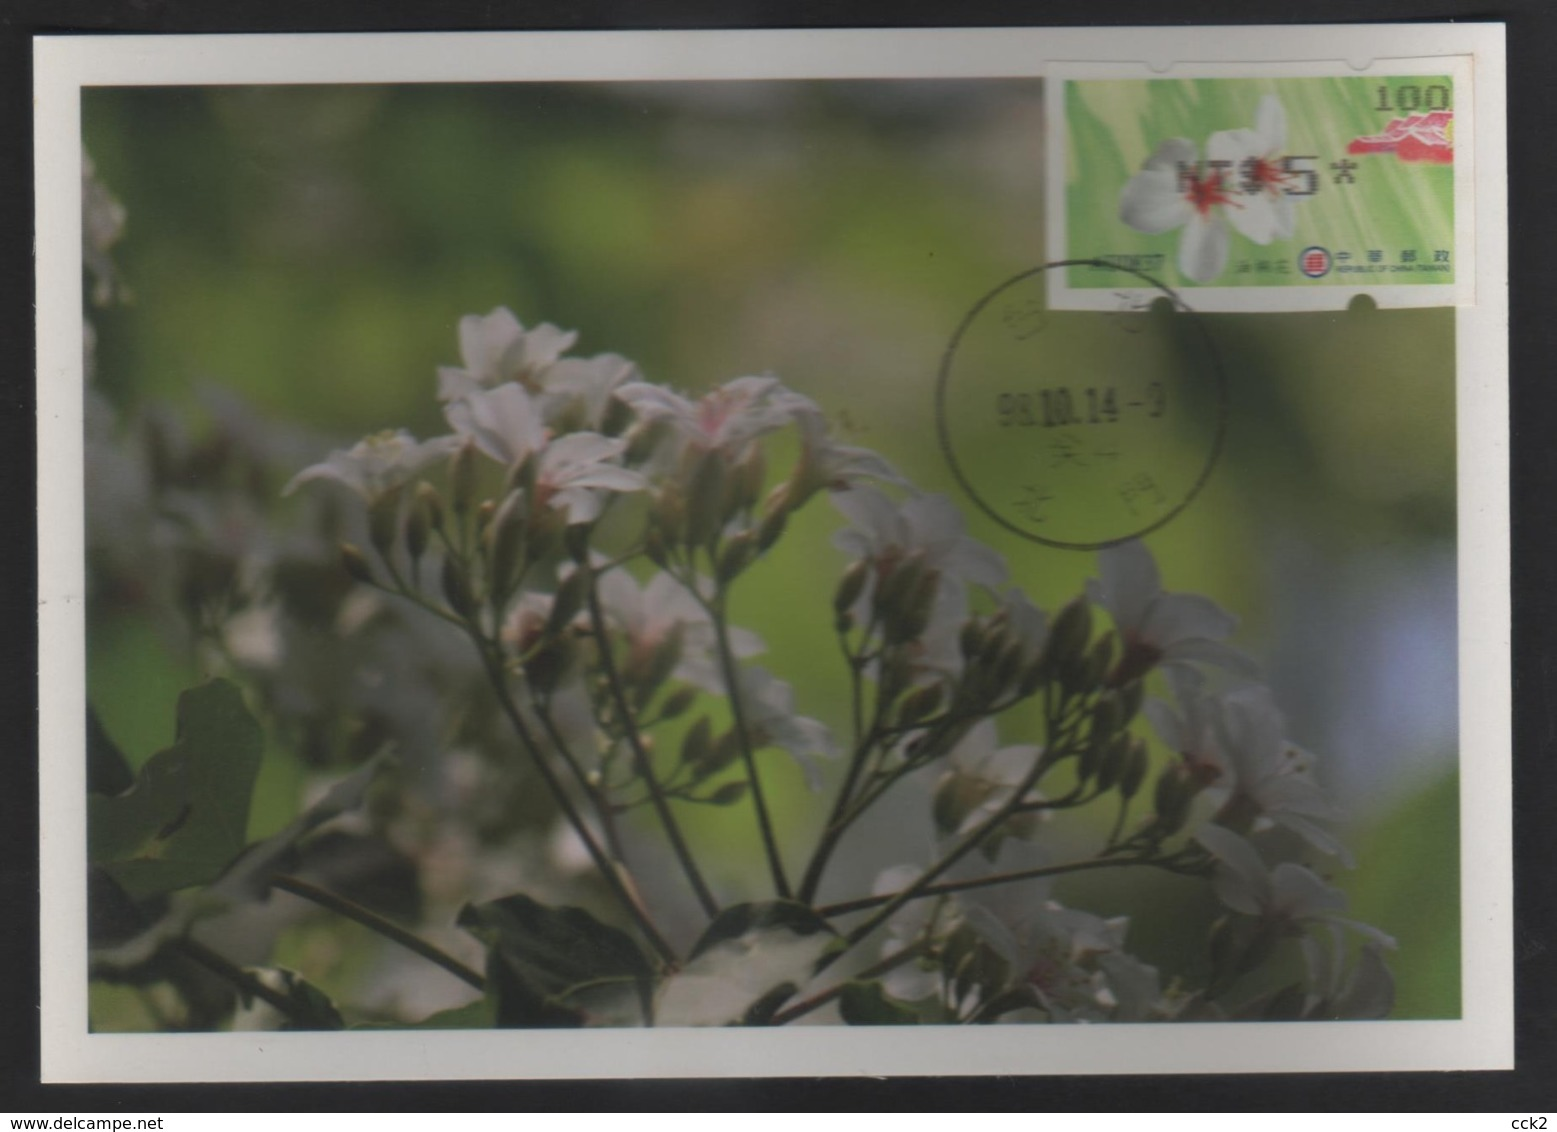 2009 Taiwan(Formosa) Carte Maximum Card With Tung Blossoms ATM Label (continued) - ATM - Frama (vignette)